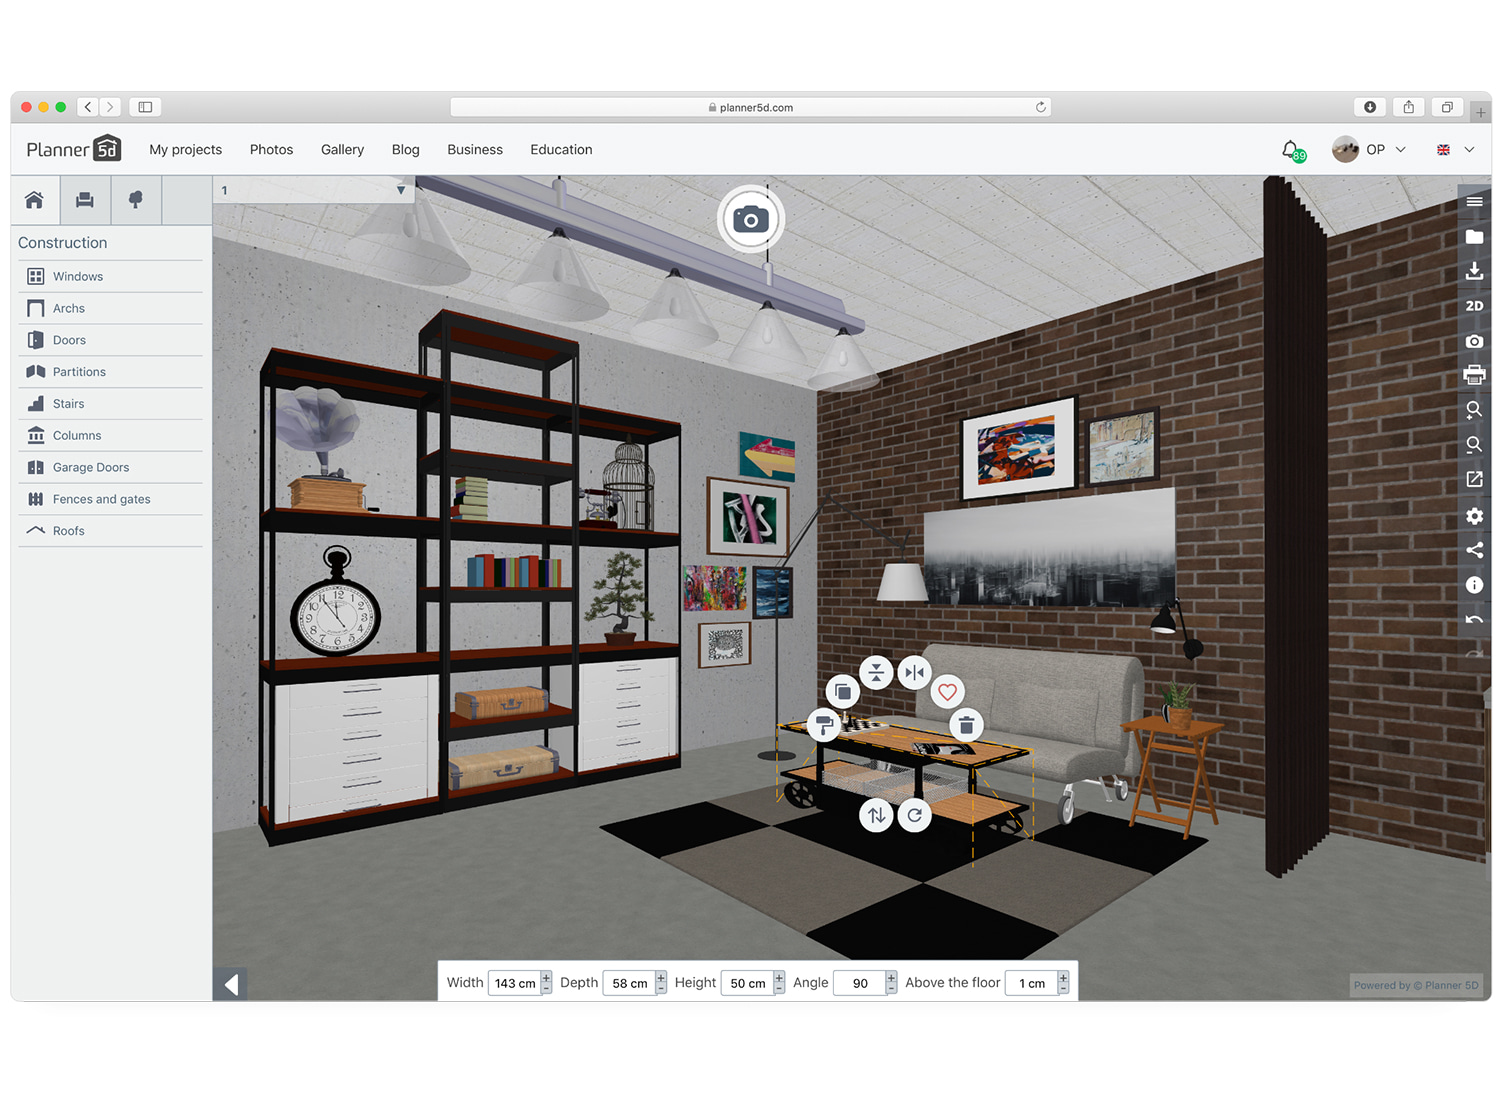 Commercial Kitchen Design App Free Planner 5d